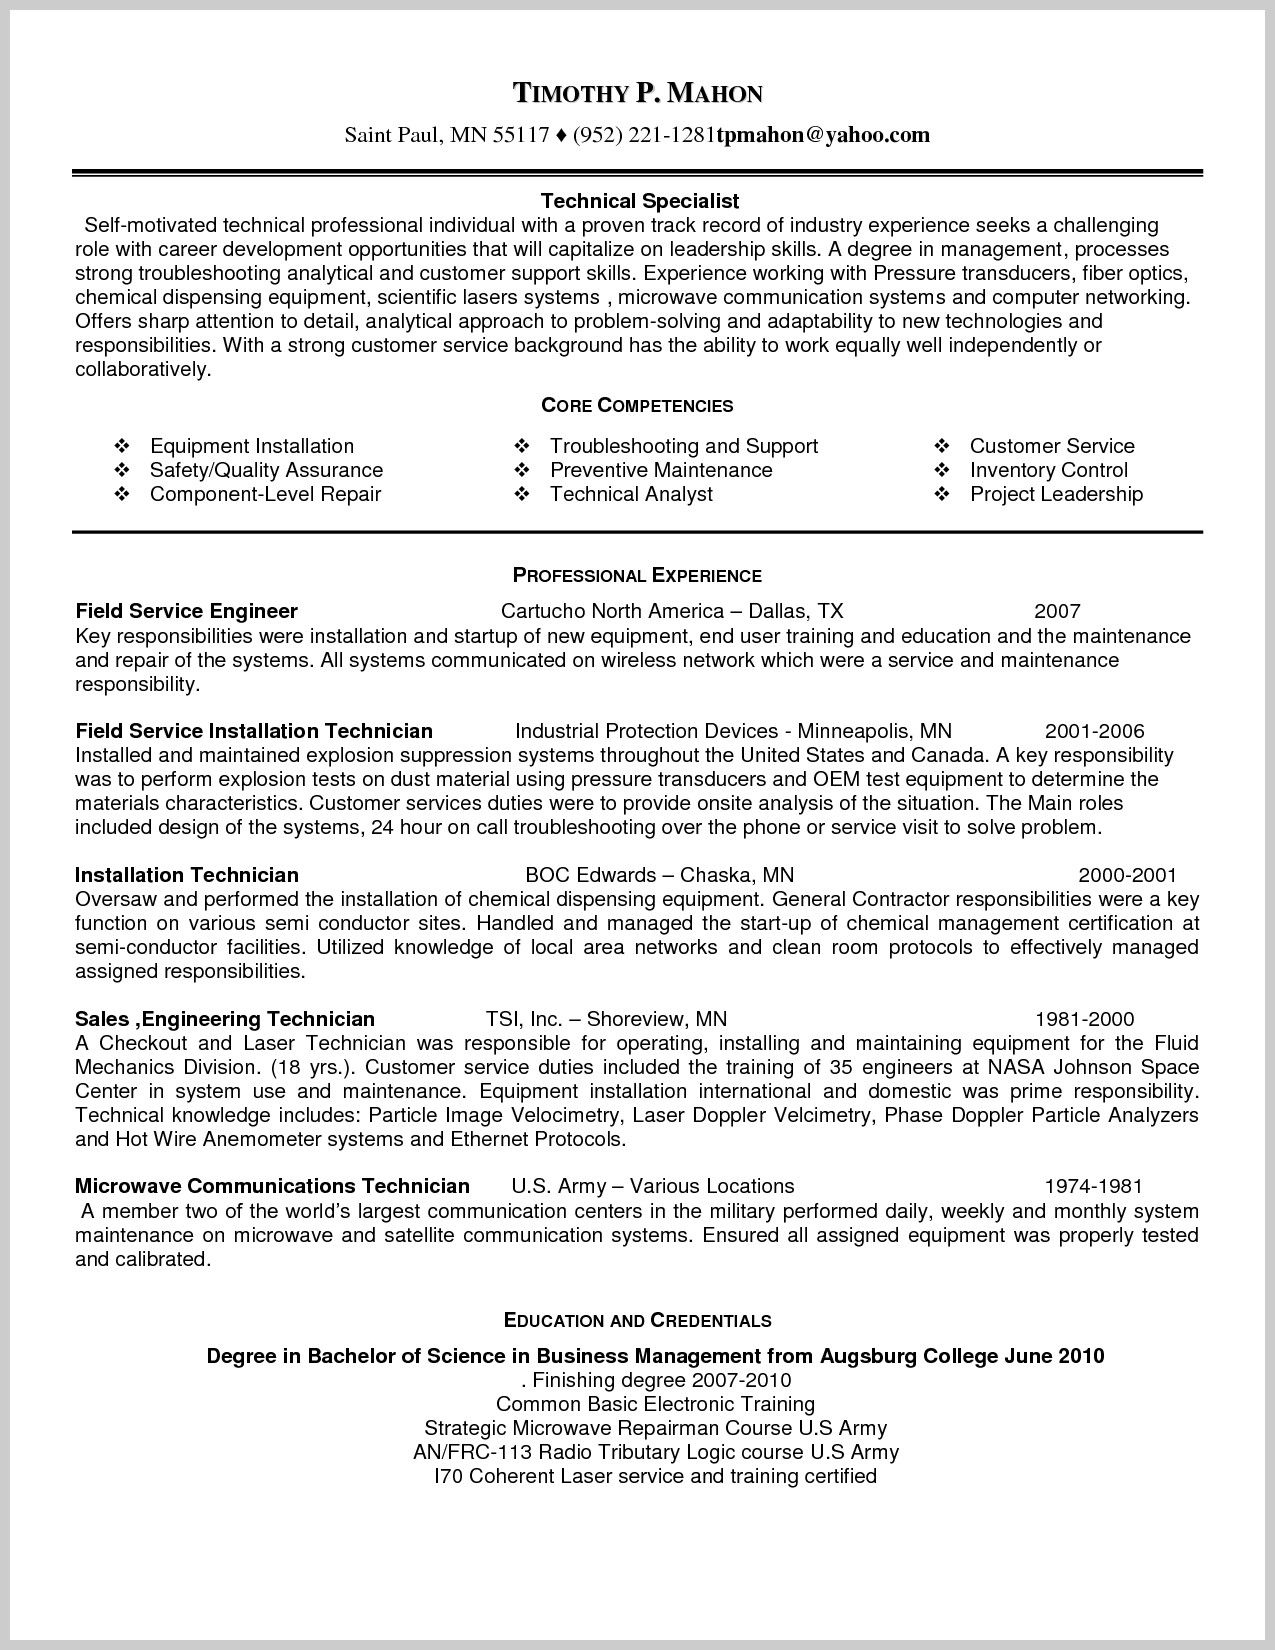 sample resume for field service technician 218944